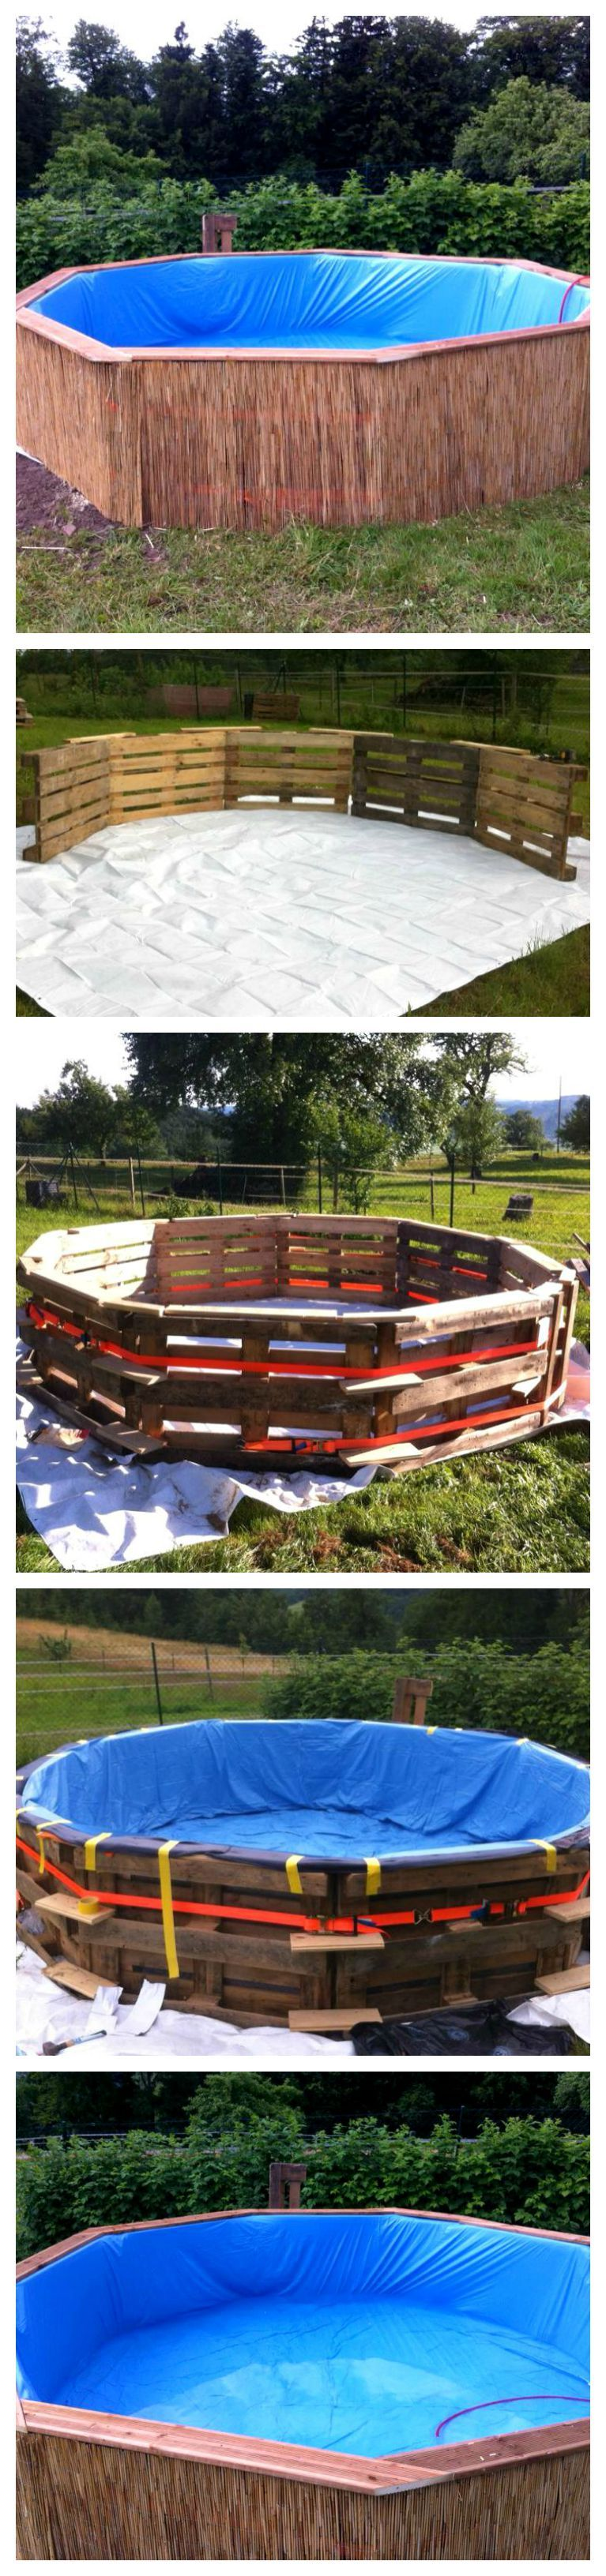 Swimming Pool Aus Paletten This Backyard Swimming Pool Made Out Of Pallets Will Make Your